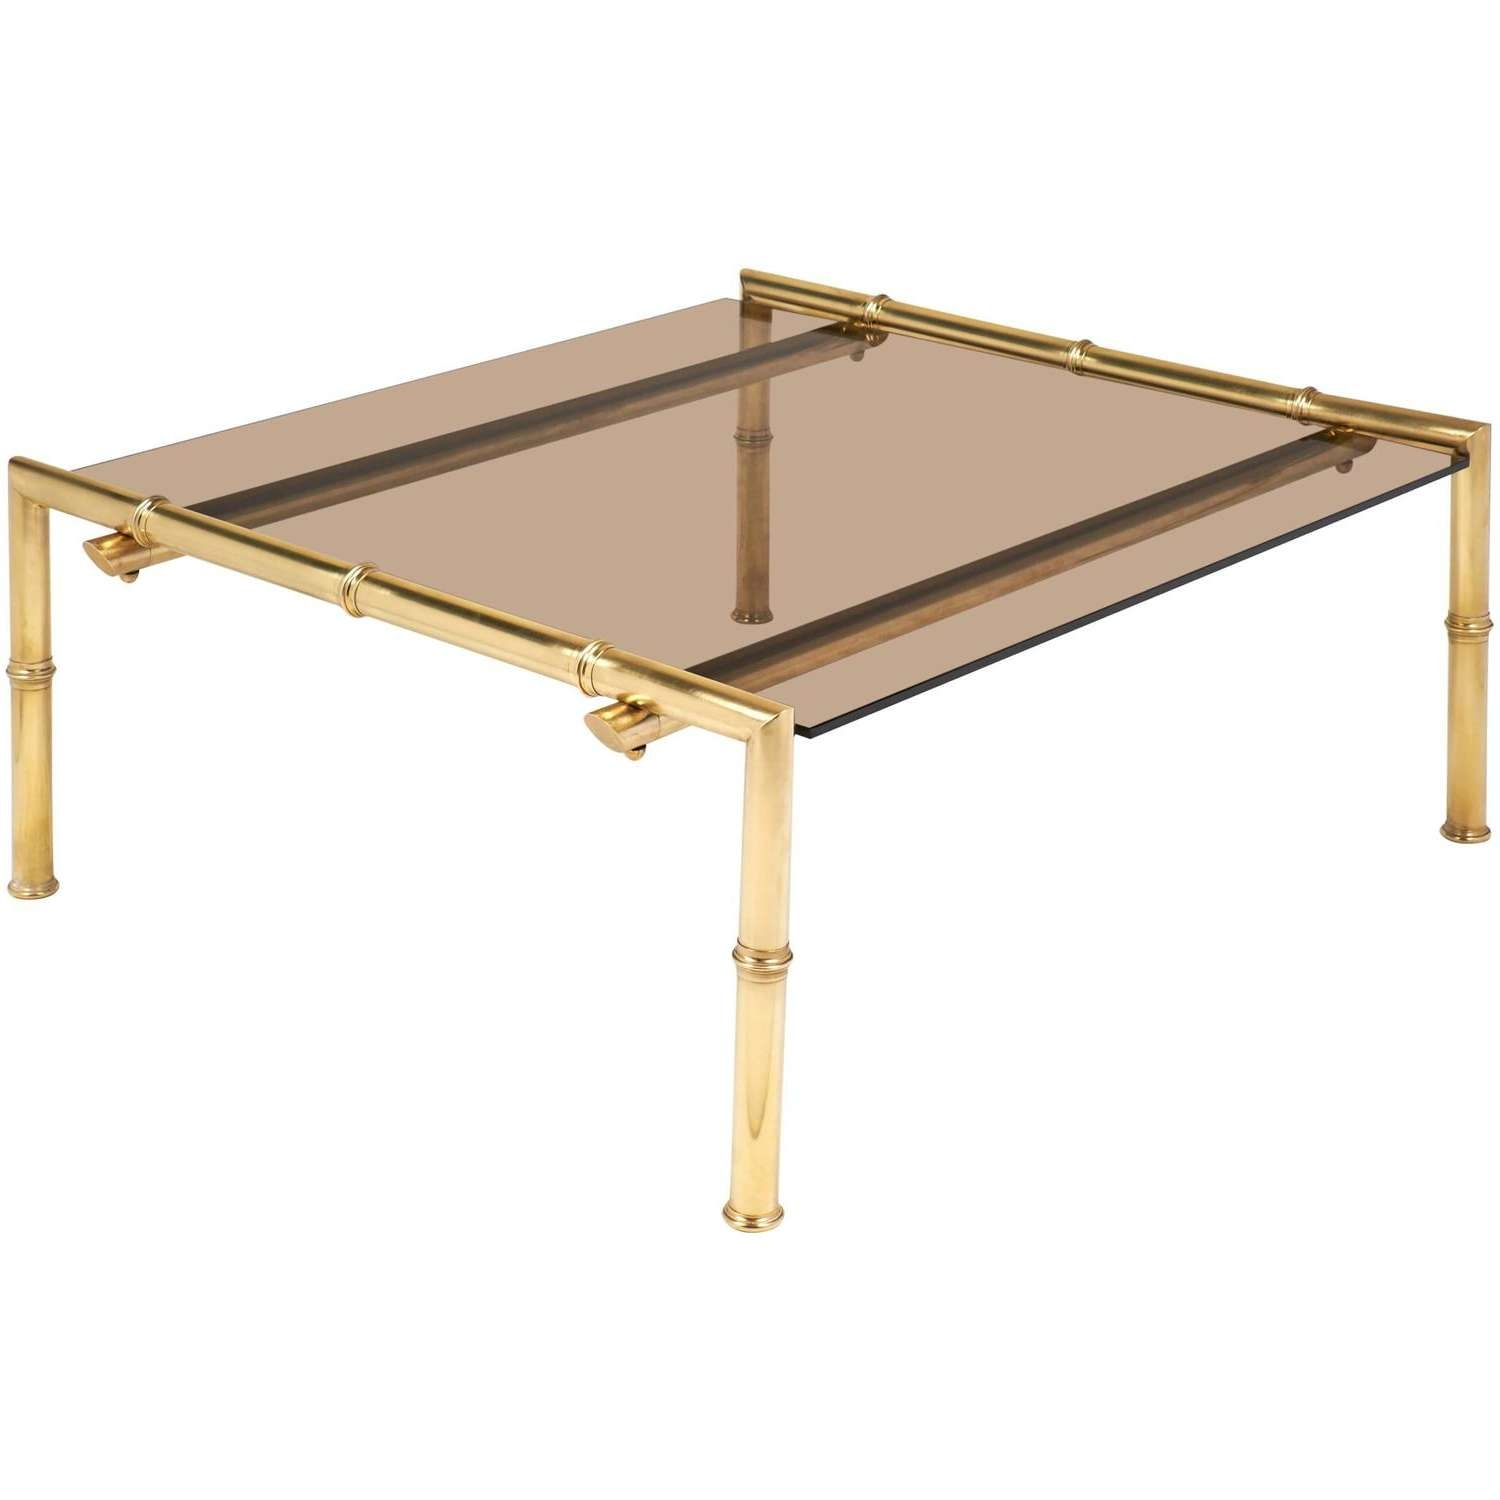 Coffee Tables : Marble Coffee Table Brass Legs Base Antique And For Best And Newest Retro Smoked Glass Coffee Tables (View 14 of 20)